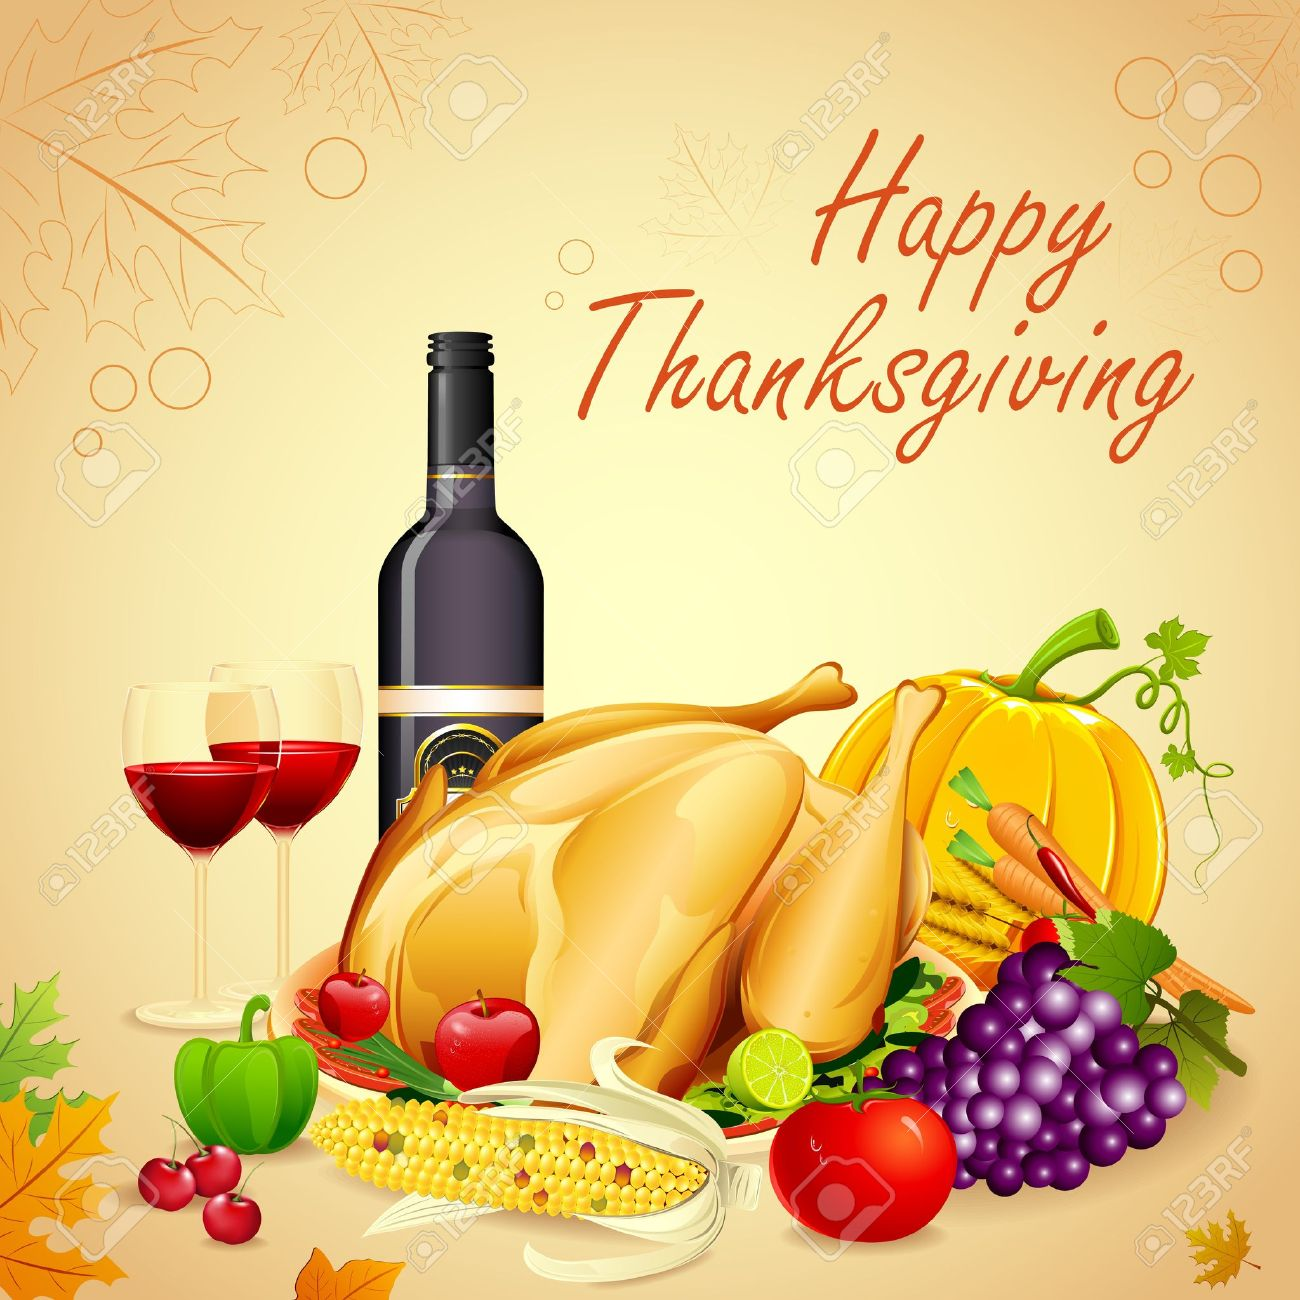 illustration of turkey, fruits and wine in Thanksgiving dinner Stock Vector - 15469069